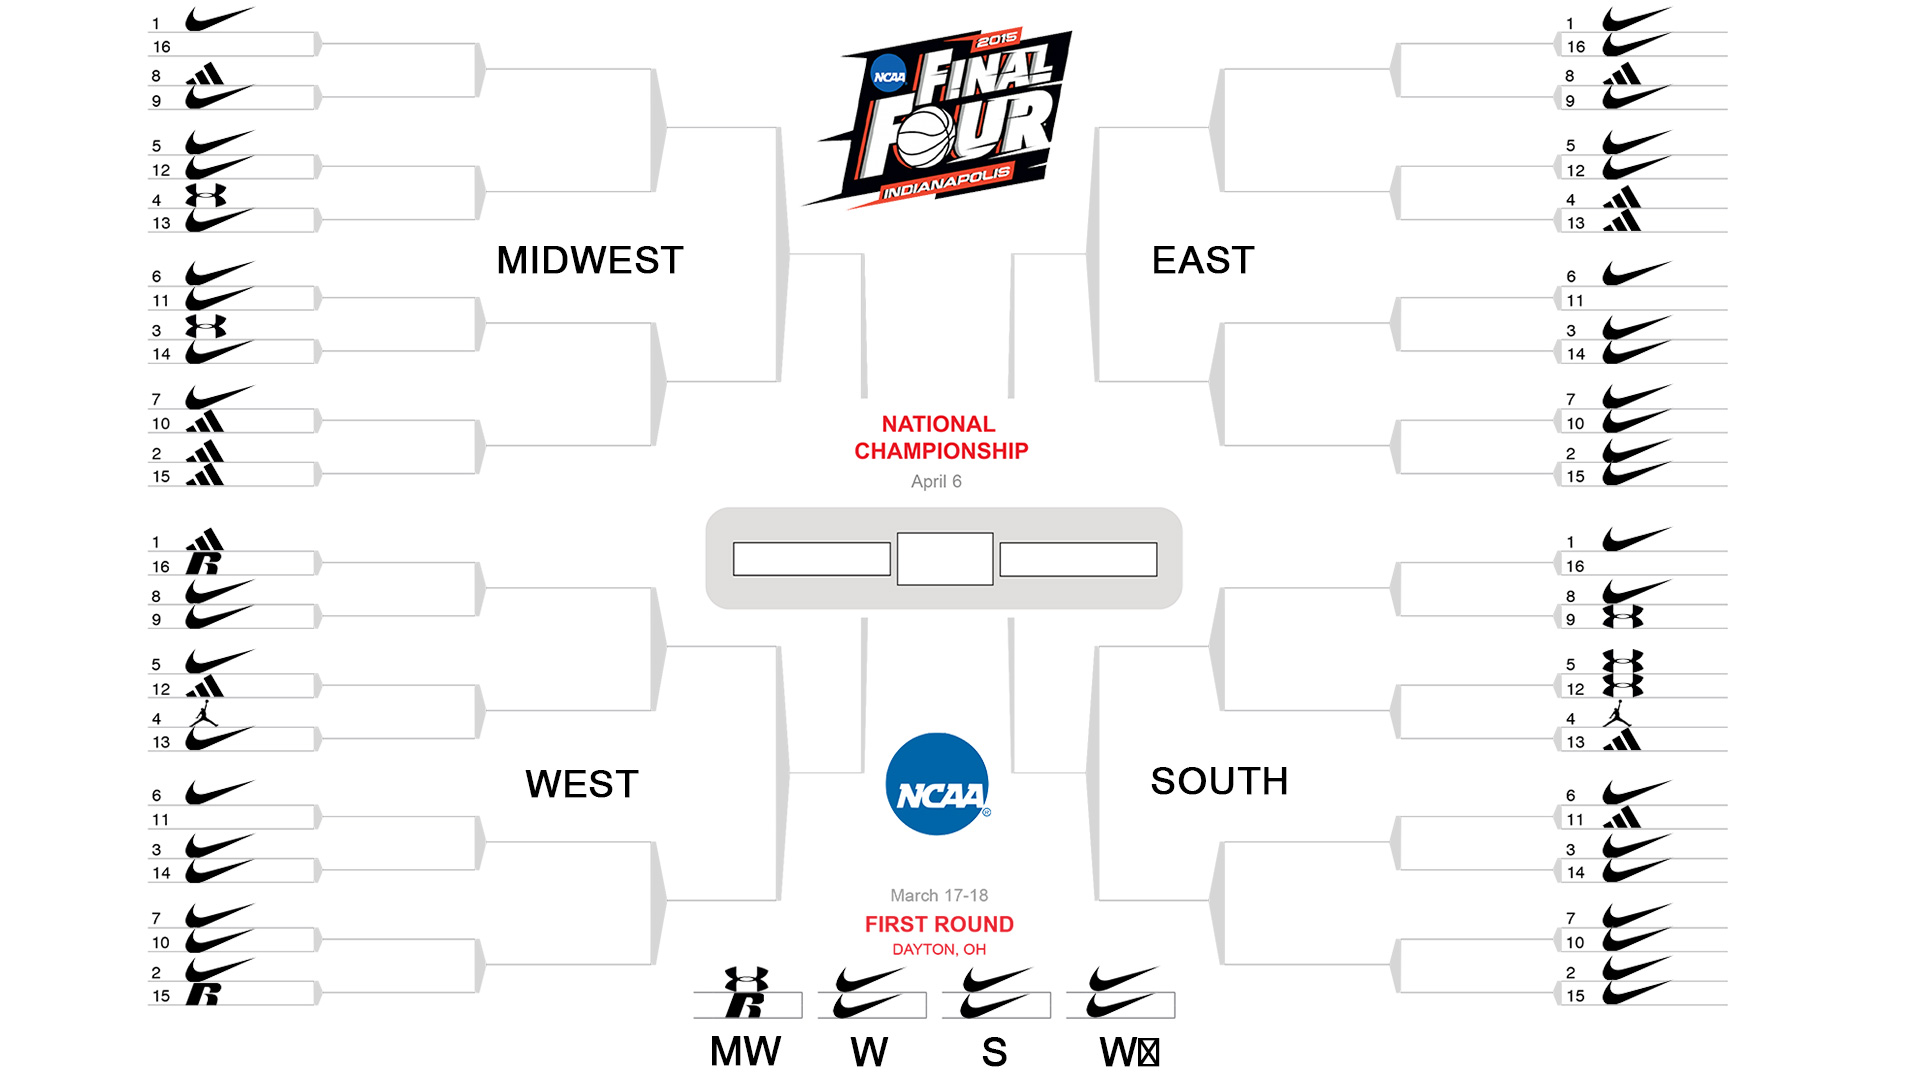 Brackets for good capitalizes on spirit of March Madness